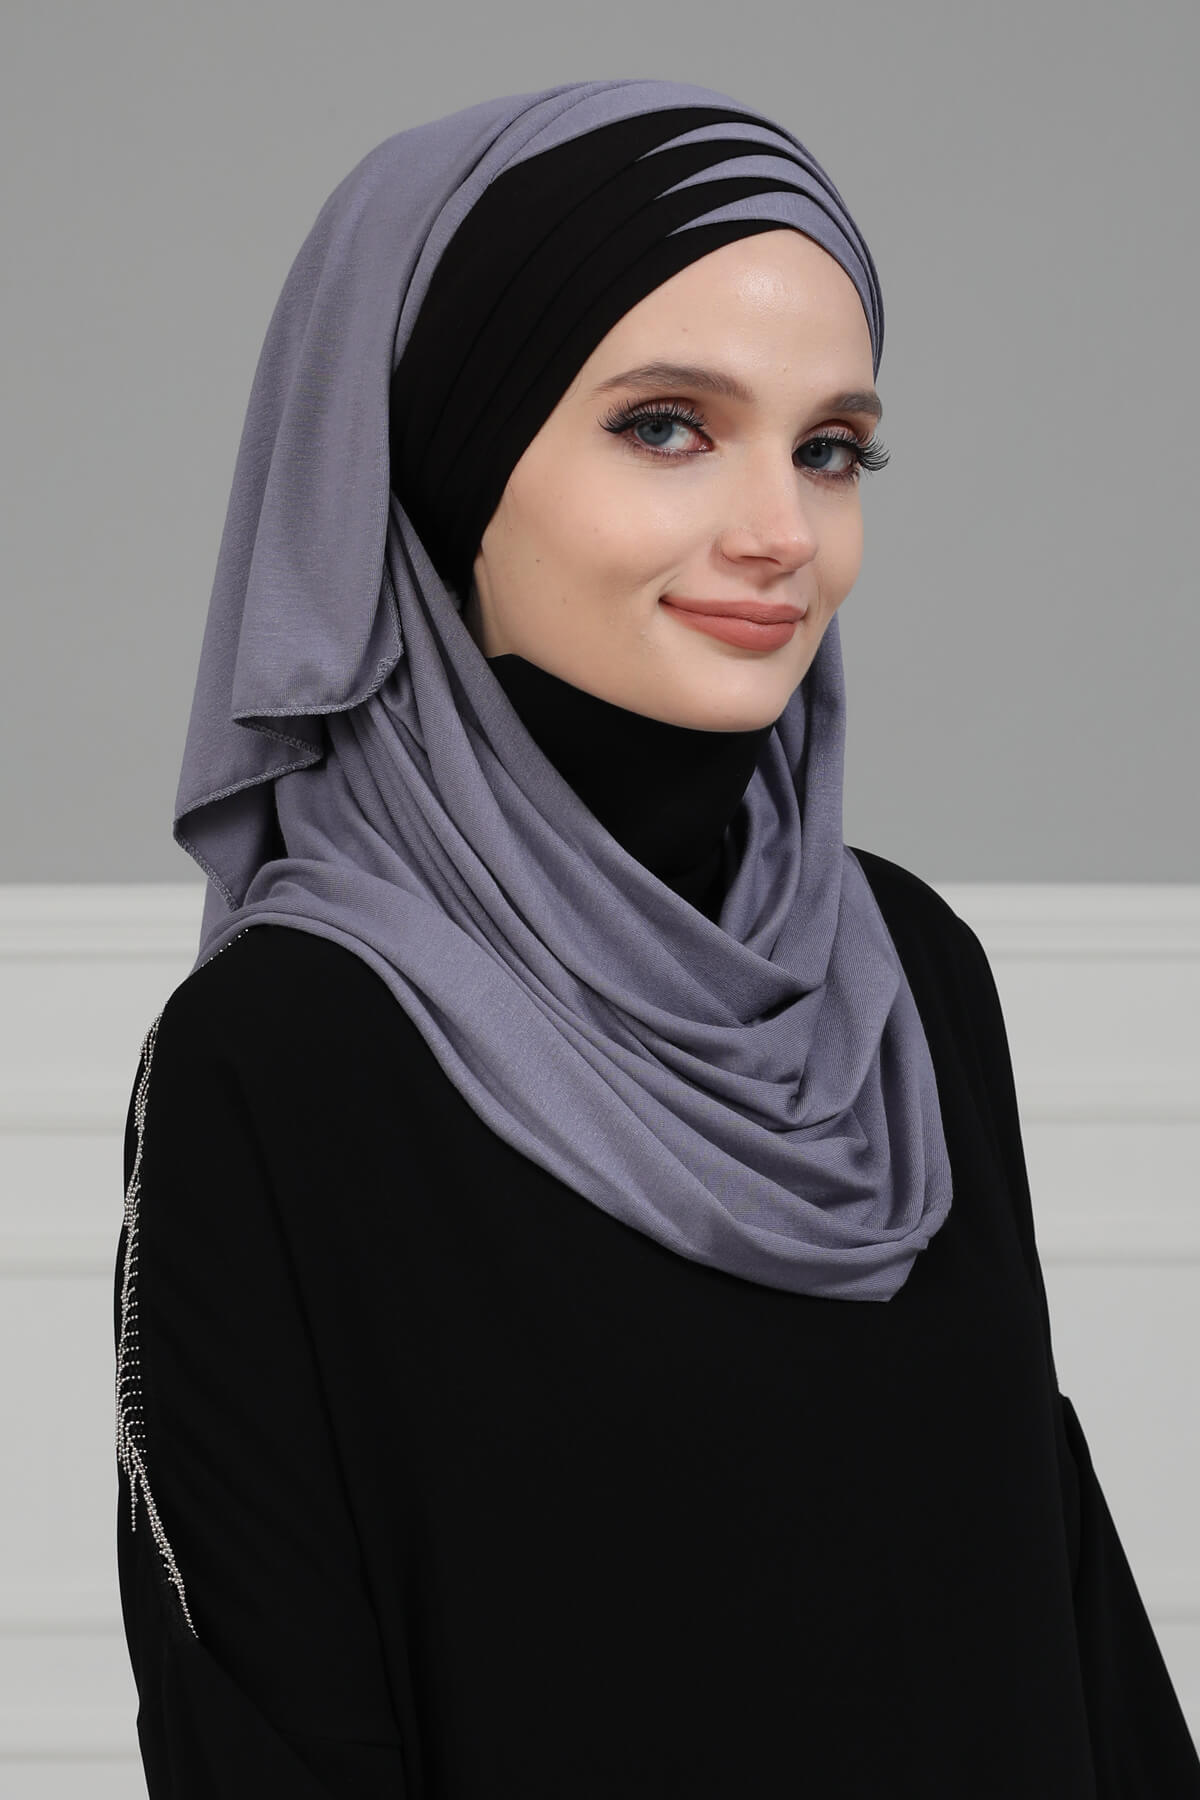 Two Colored Instant Cotton Shawl for Women Cotton Head Wrap Instant Scarf Modesty Turban Cap